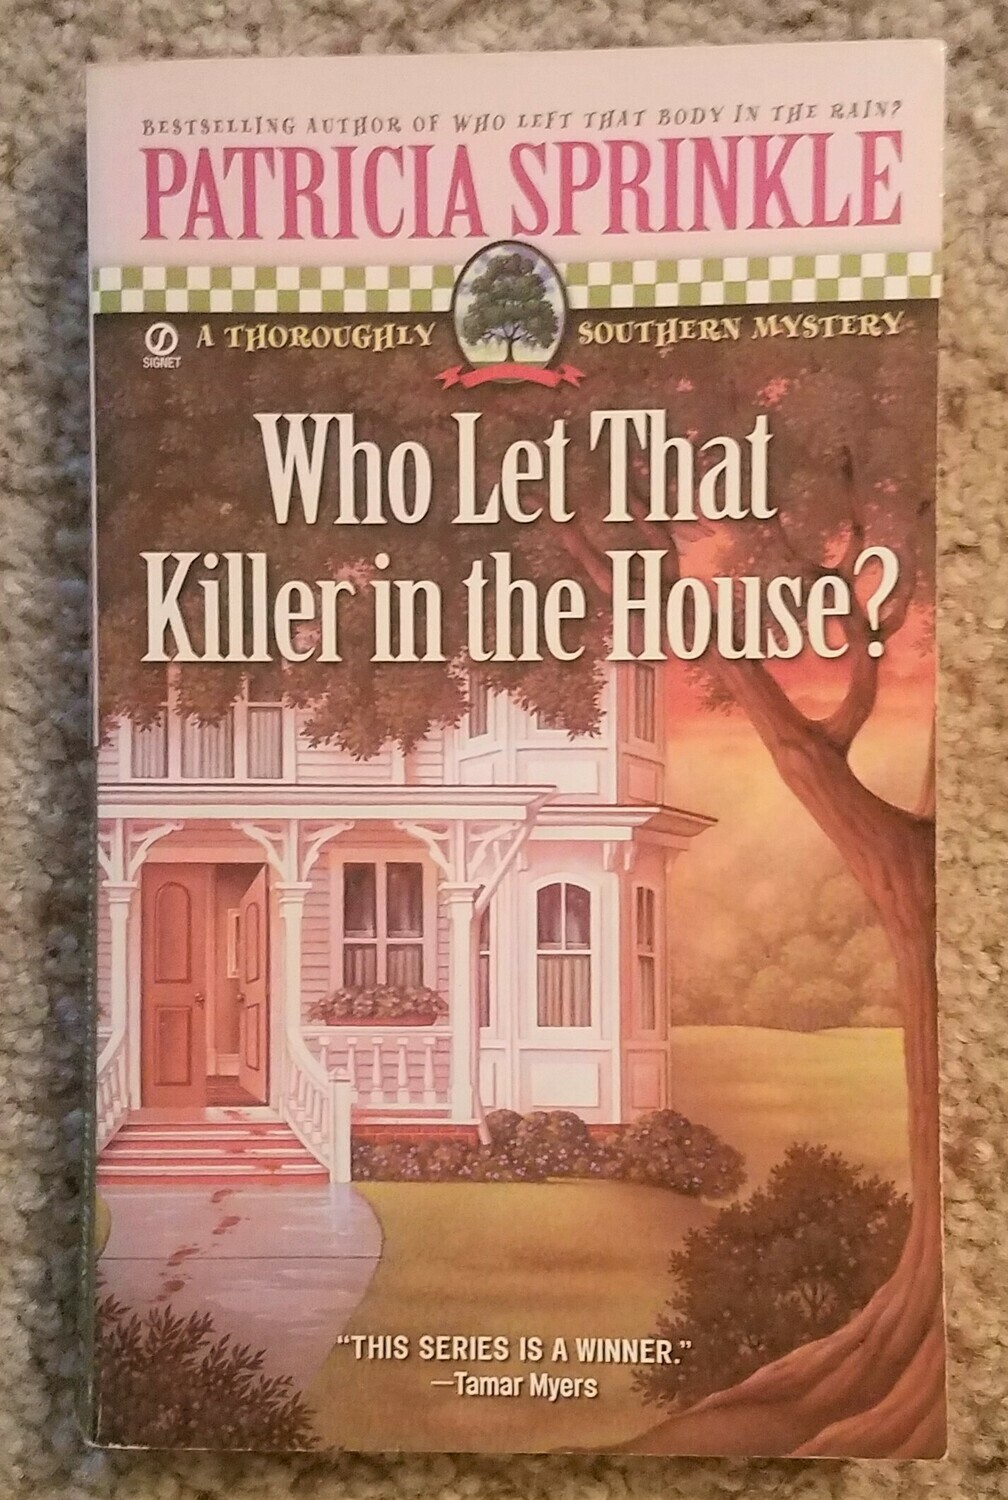 Who Let That Killer in the House? by Patricia Sprinkle